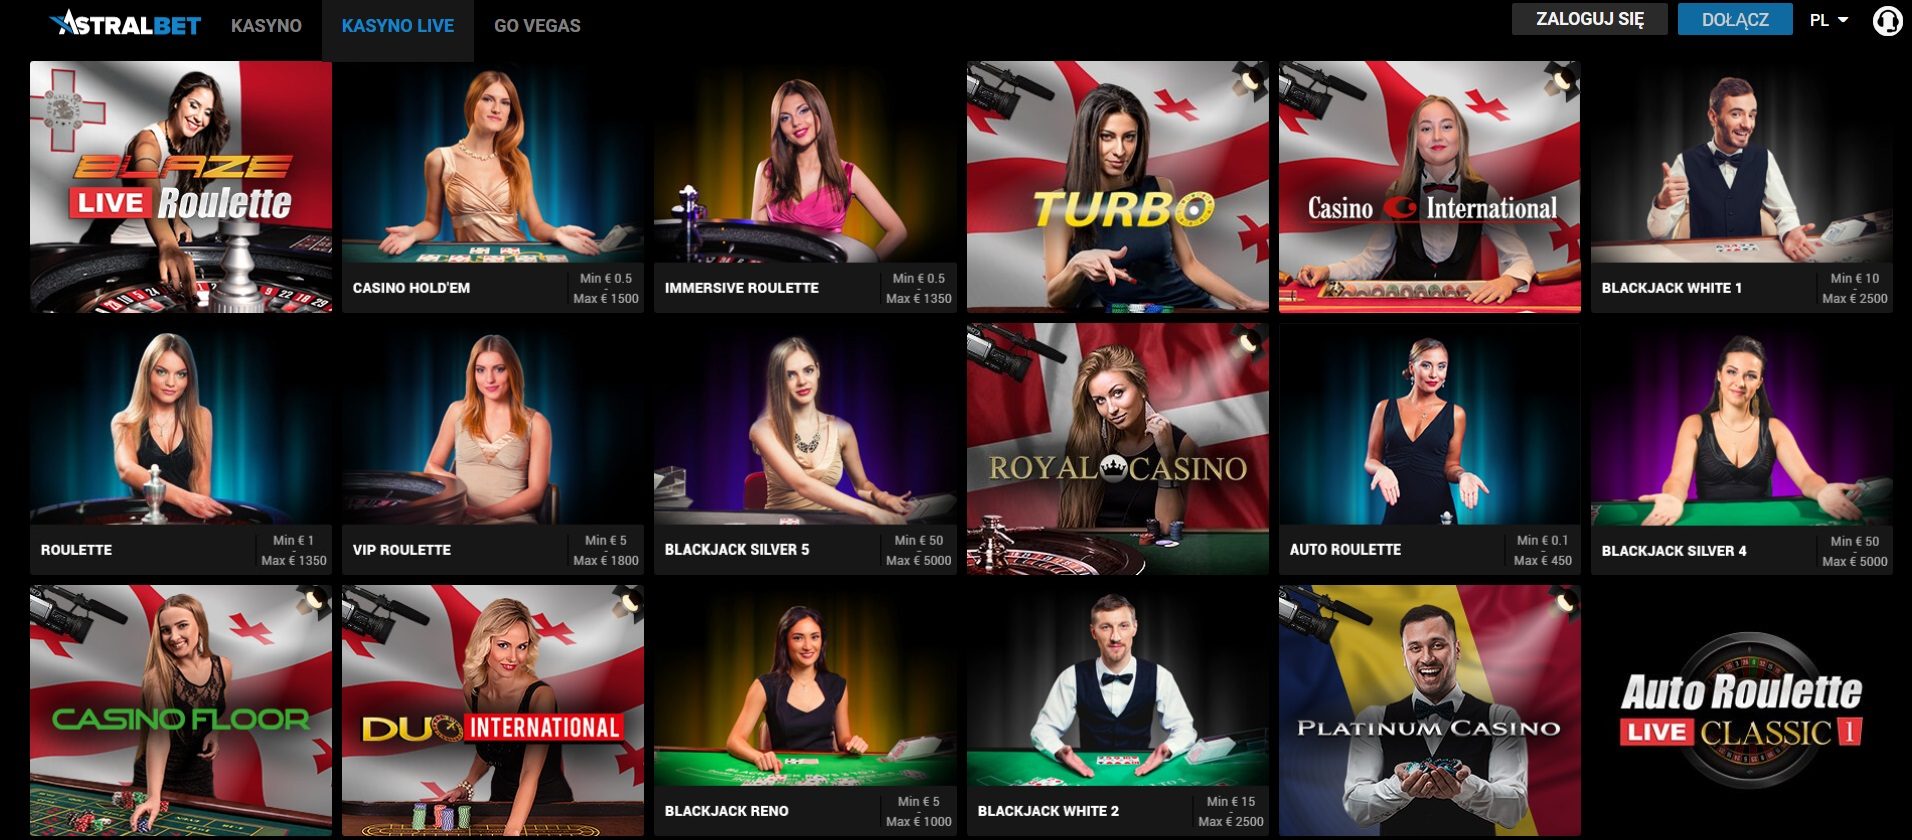 astralbet-casino-live-with-hundreds-of-games